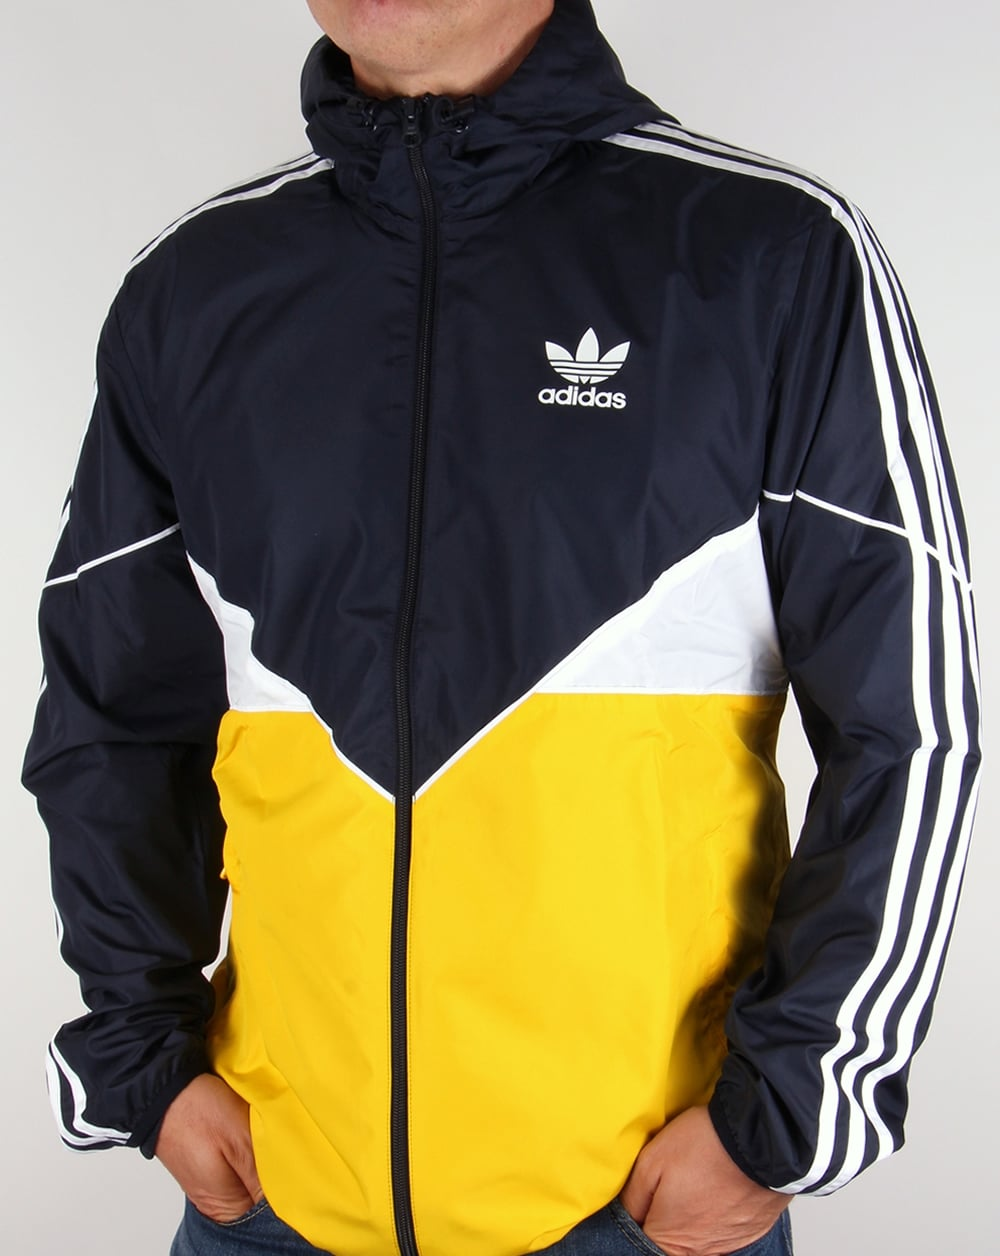 Adidas Originals Colorado Windbreaker Navy Yellow,jacket,coat,mens 1fae5e8753